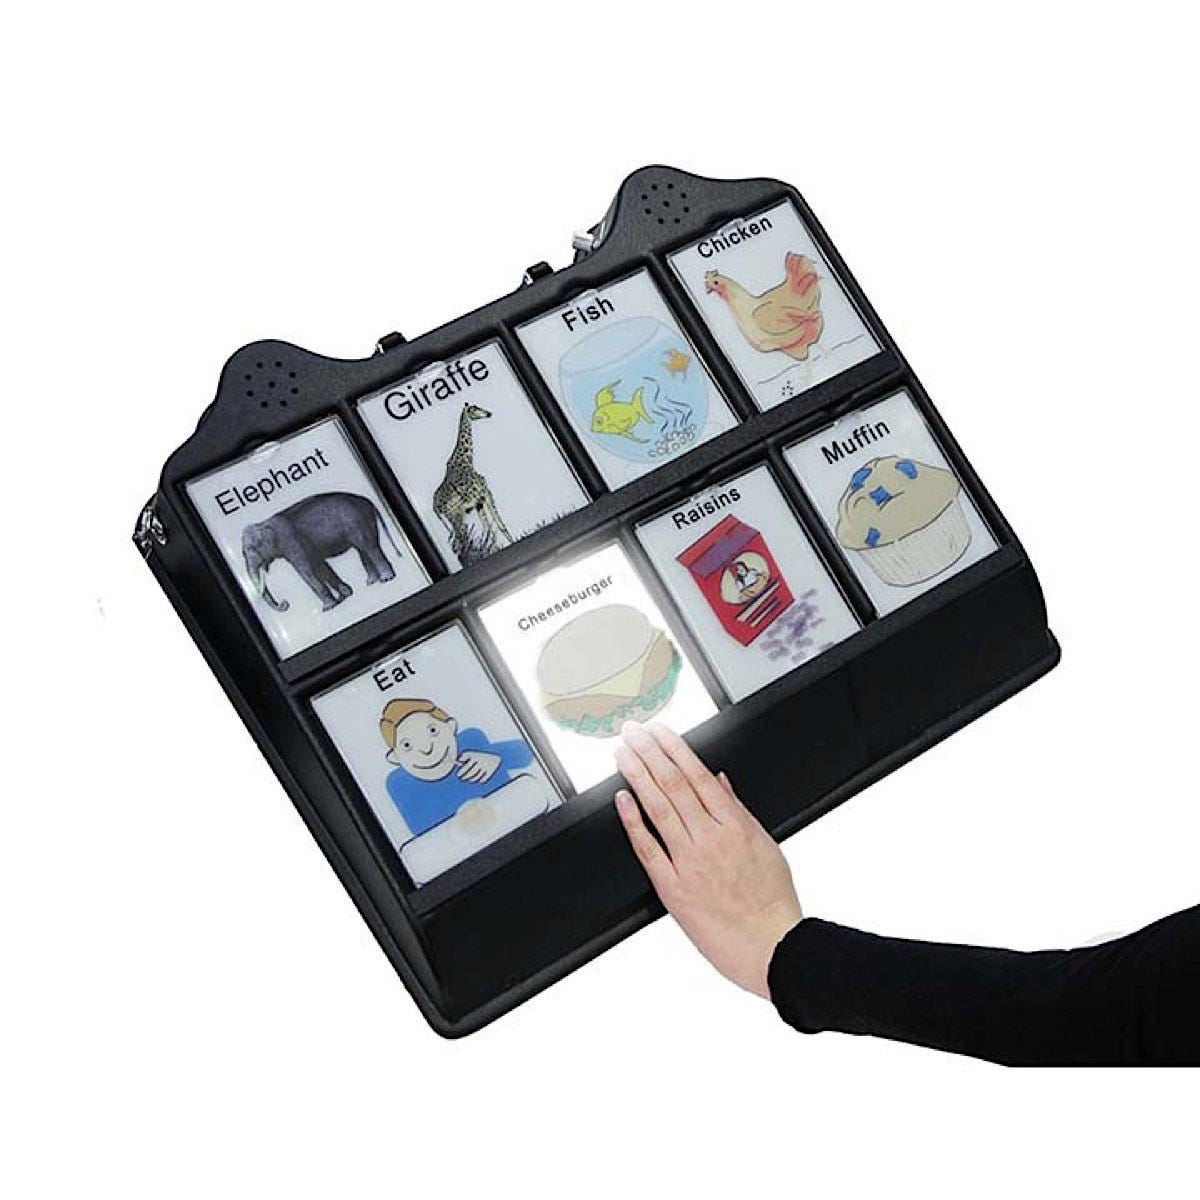 4x5 Communicator for Visually Impaired